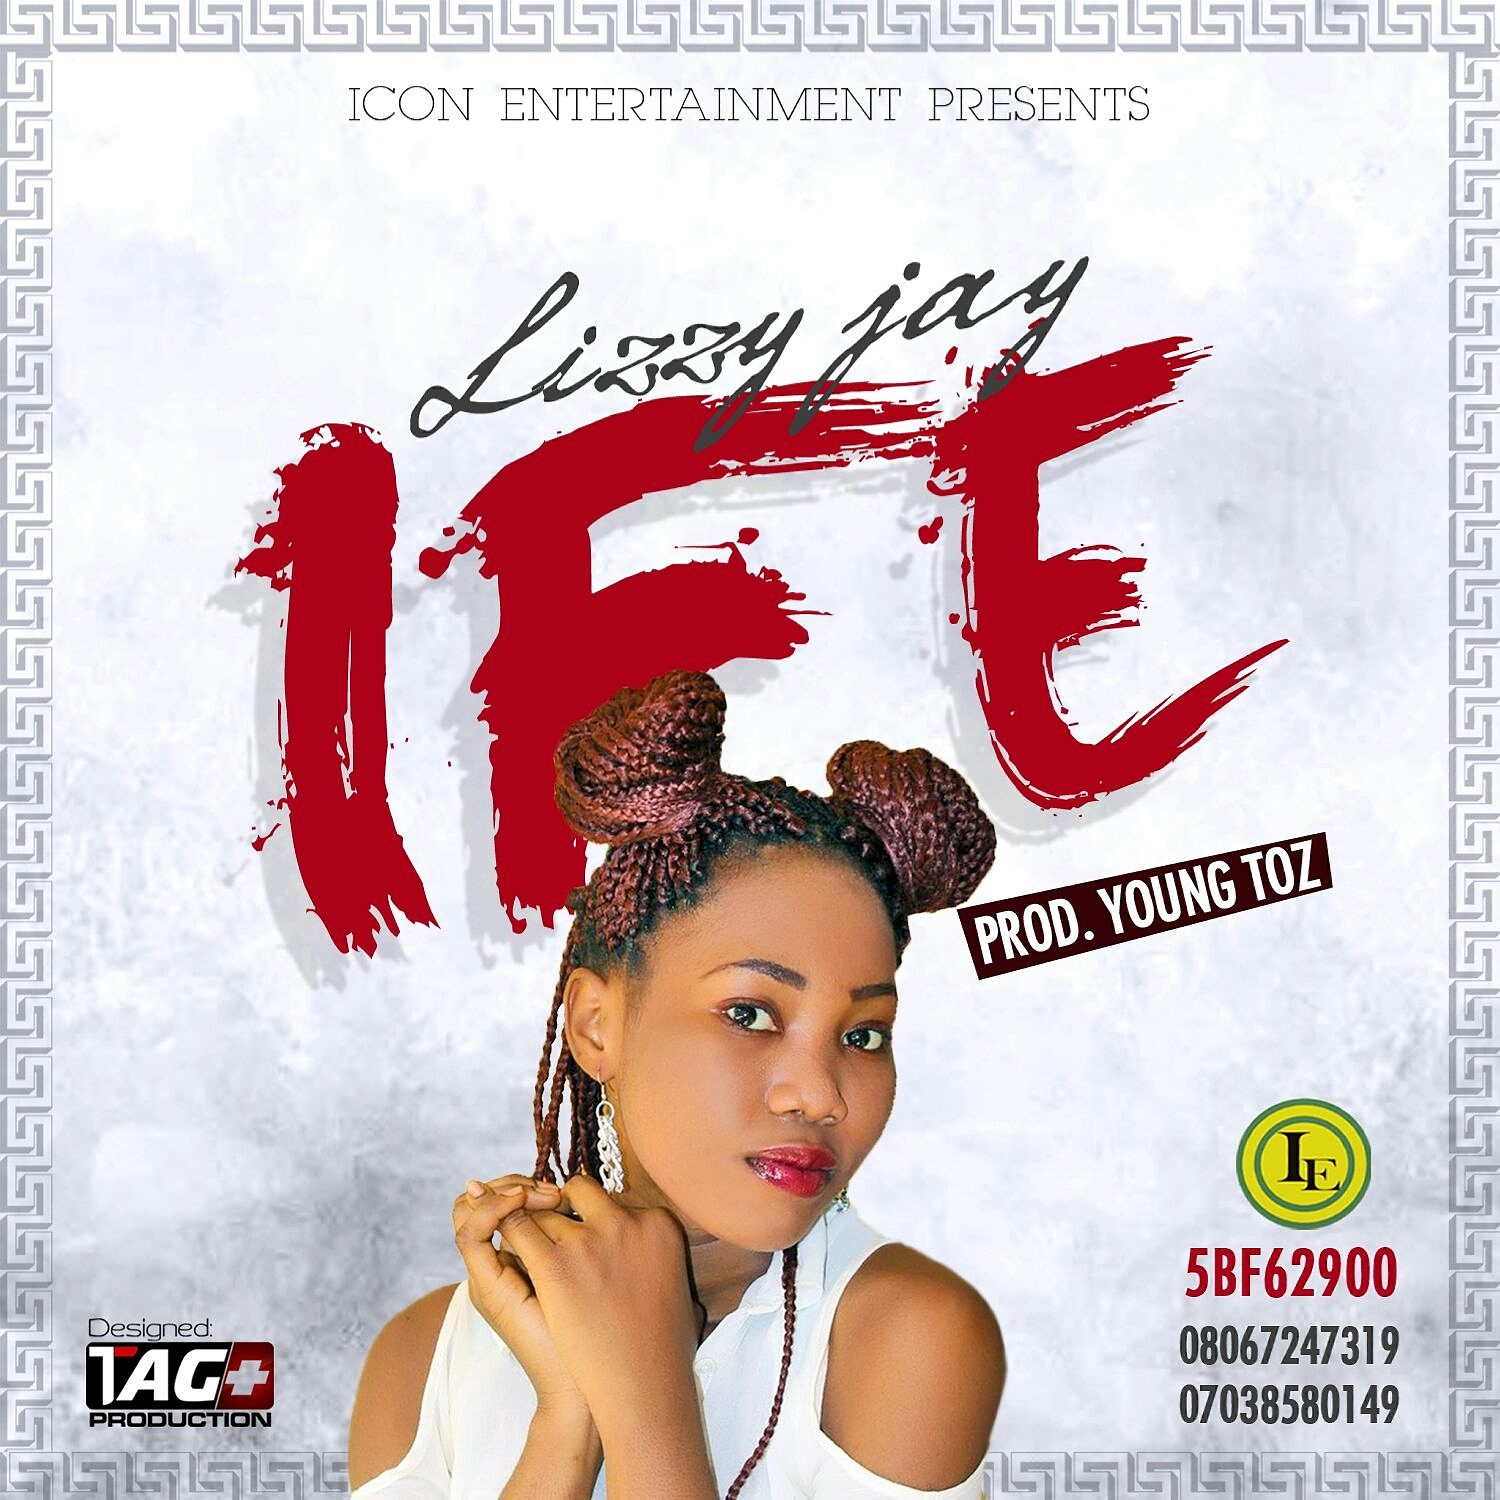 Lizzy Jay - Ife (Love) - [Prod. By Young Toz]